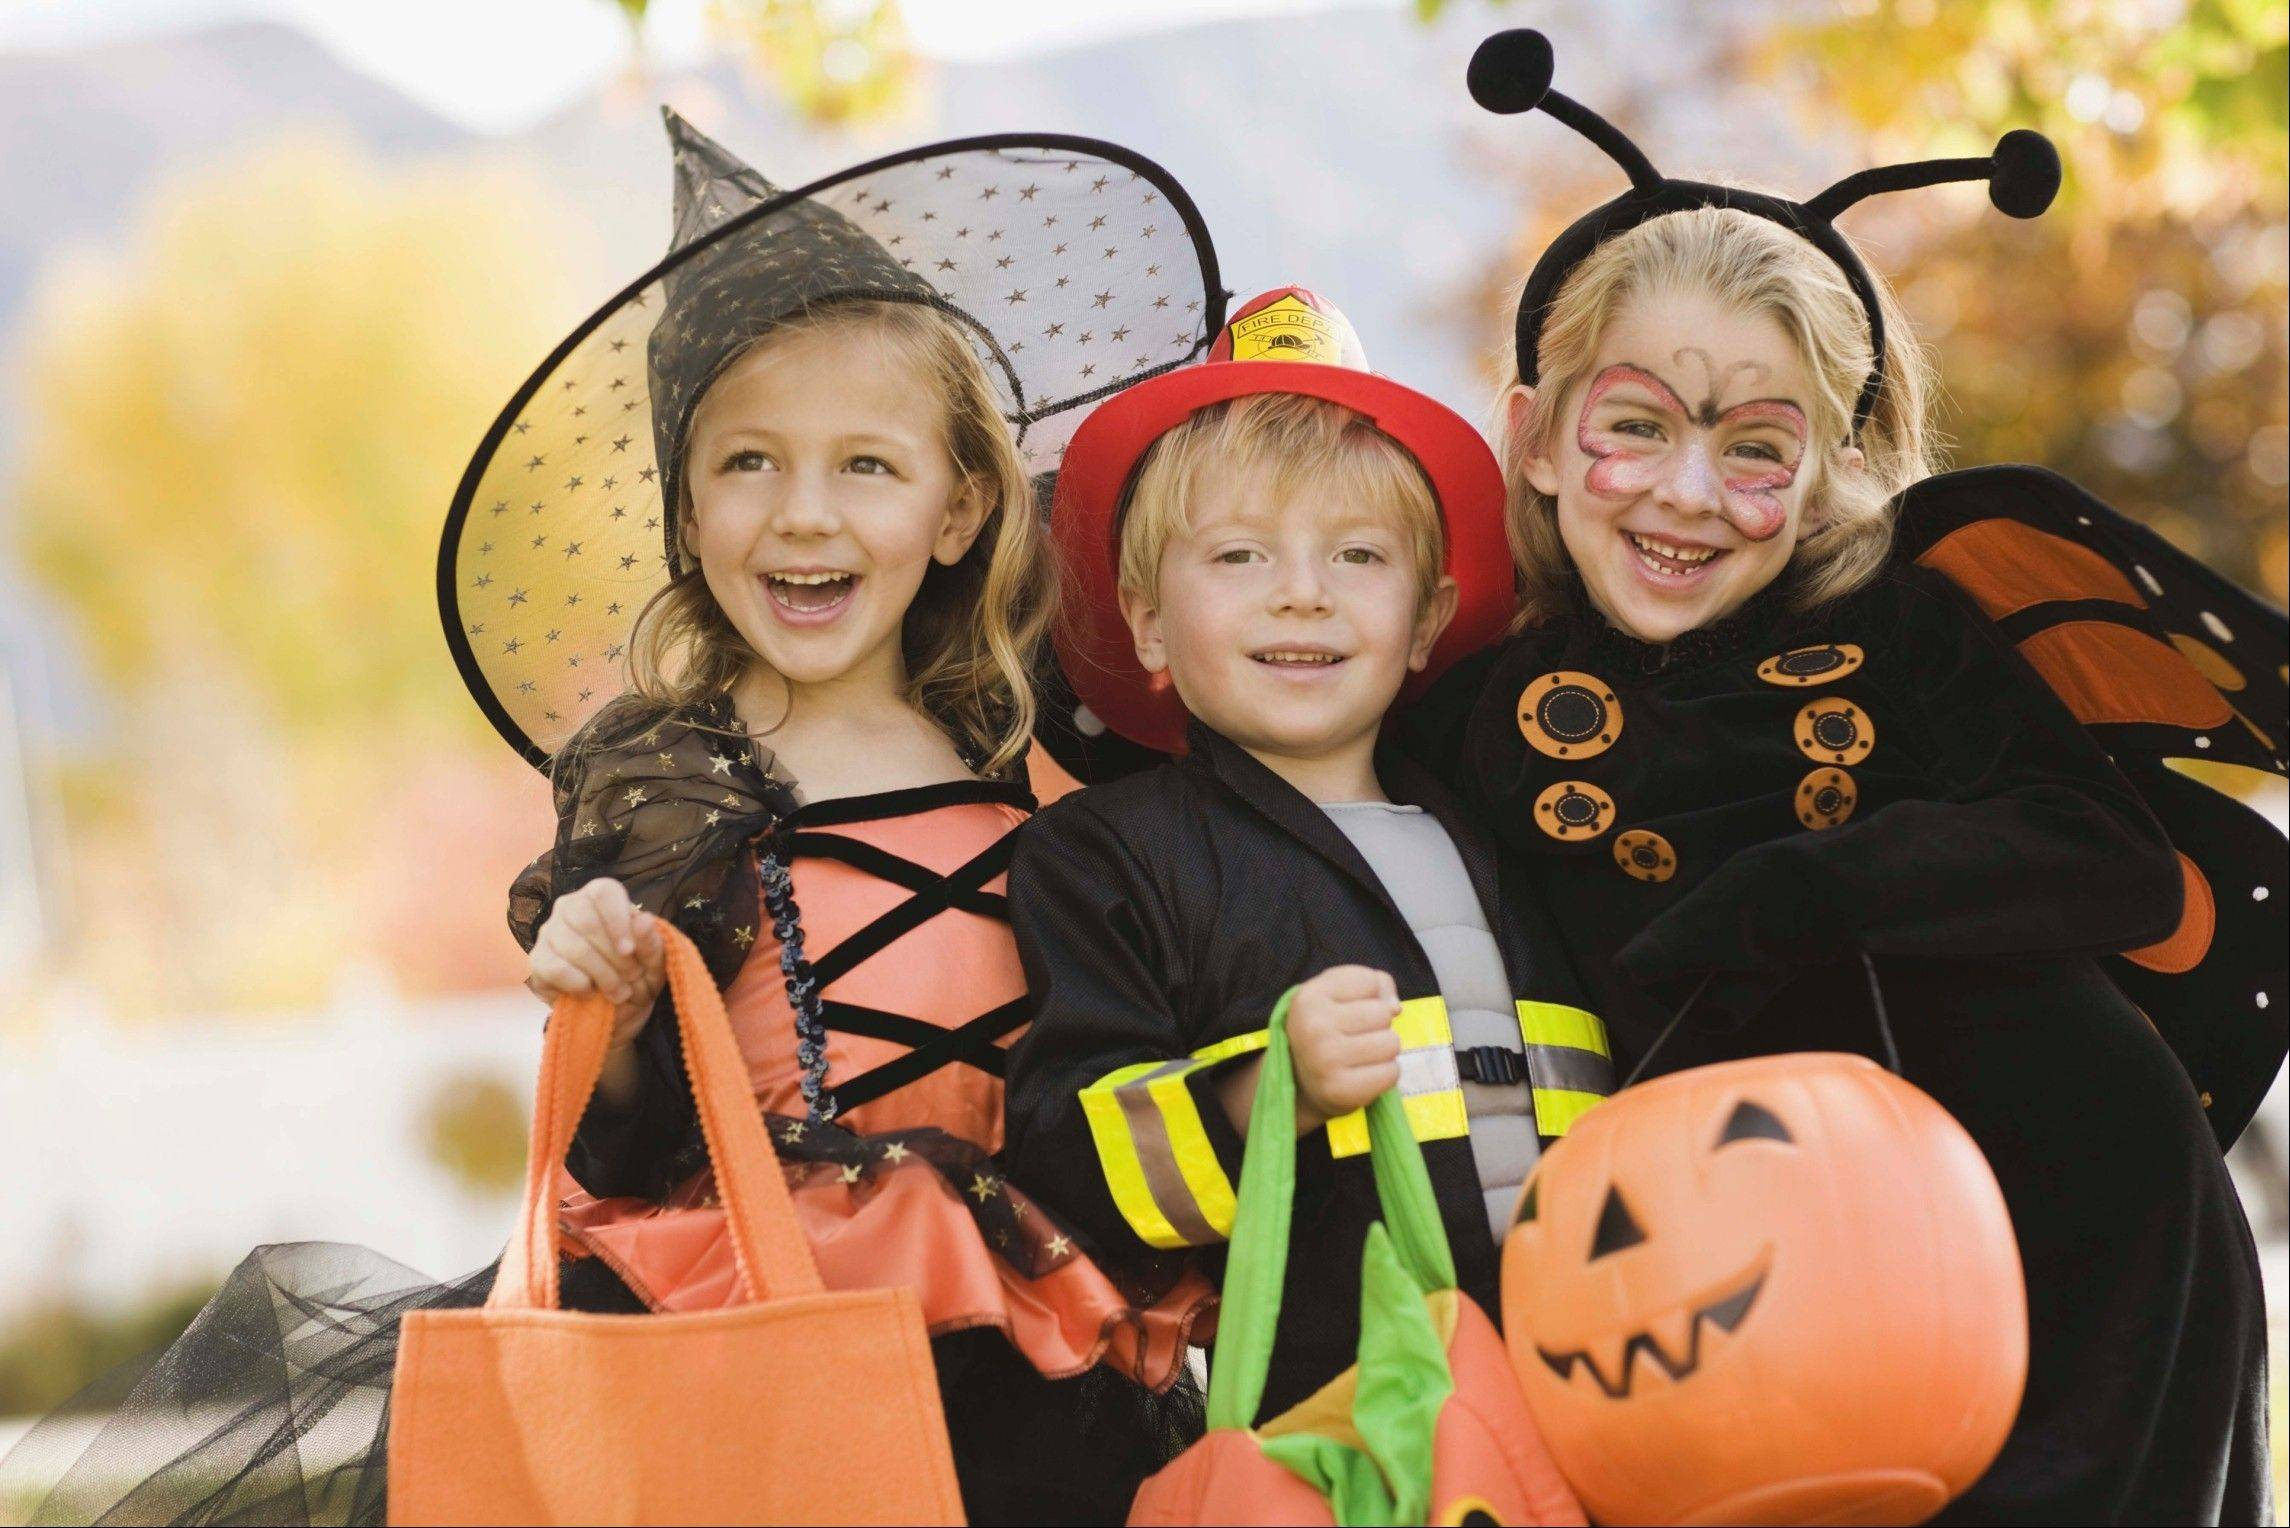 Kids can go trick-or-treating and meet popular children's cartoon and storybook characters at the Halloween Trick or Treat Path at Viking Park in Gurnee.